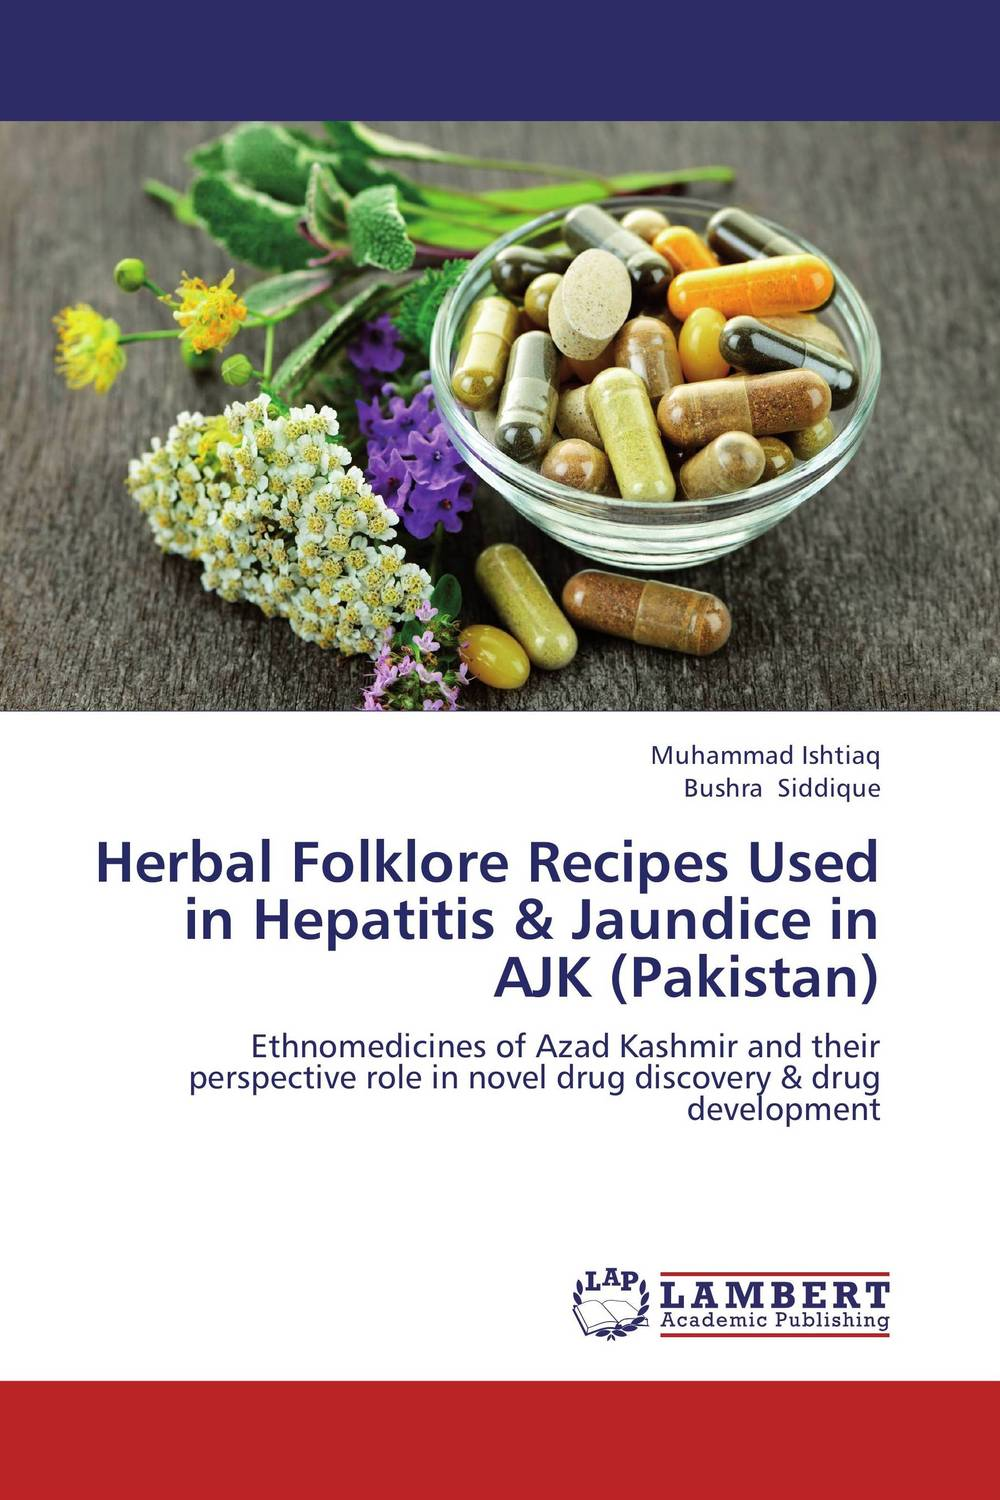 Herbal Folklore Recipes Used in Hepatitis & Jaundice in AJK (Pakistan) herbal muscle